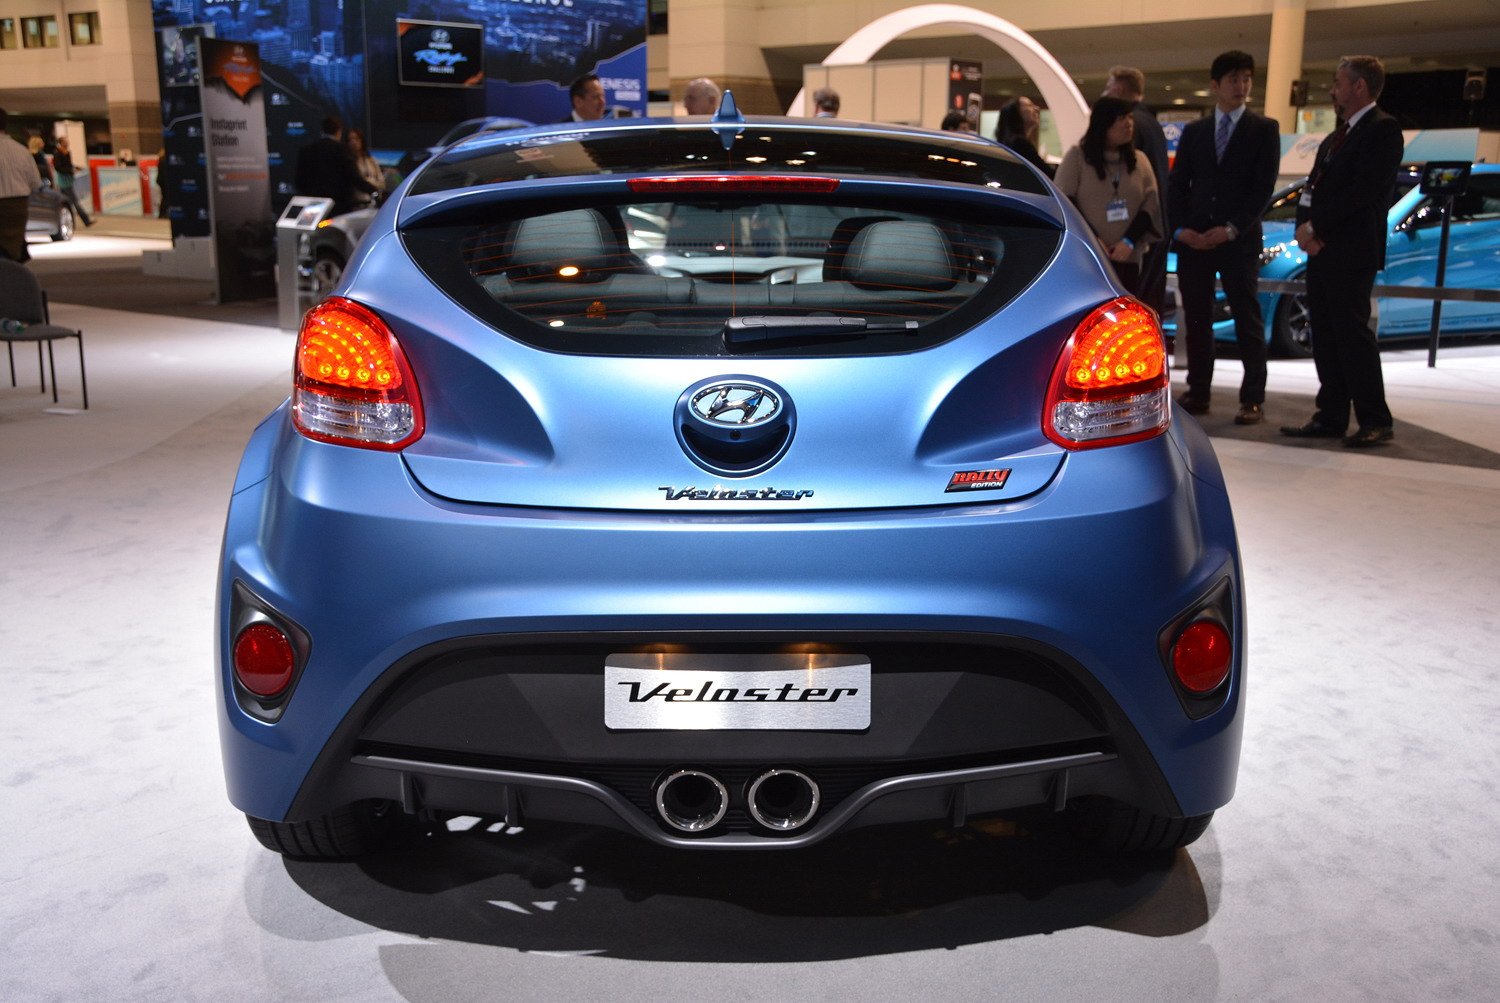 2016 hyundai veloster rally edition review top speed. Black Bedroom Furniture Sets. Home Design Ideas